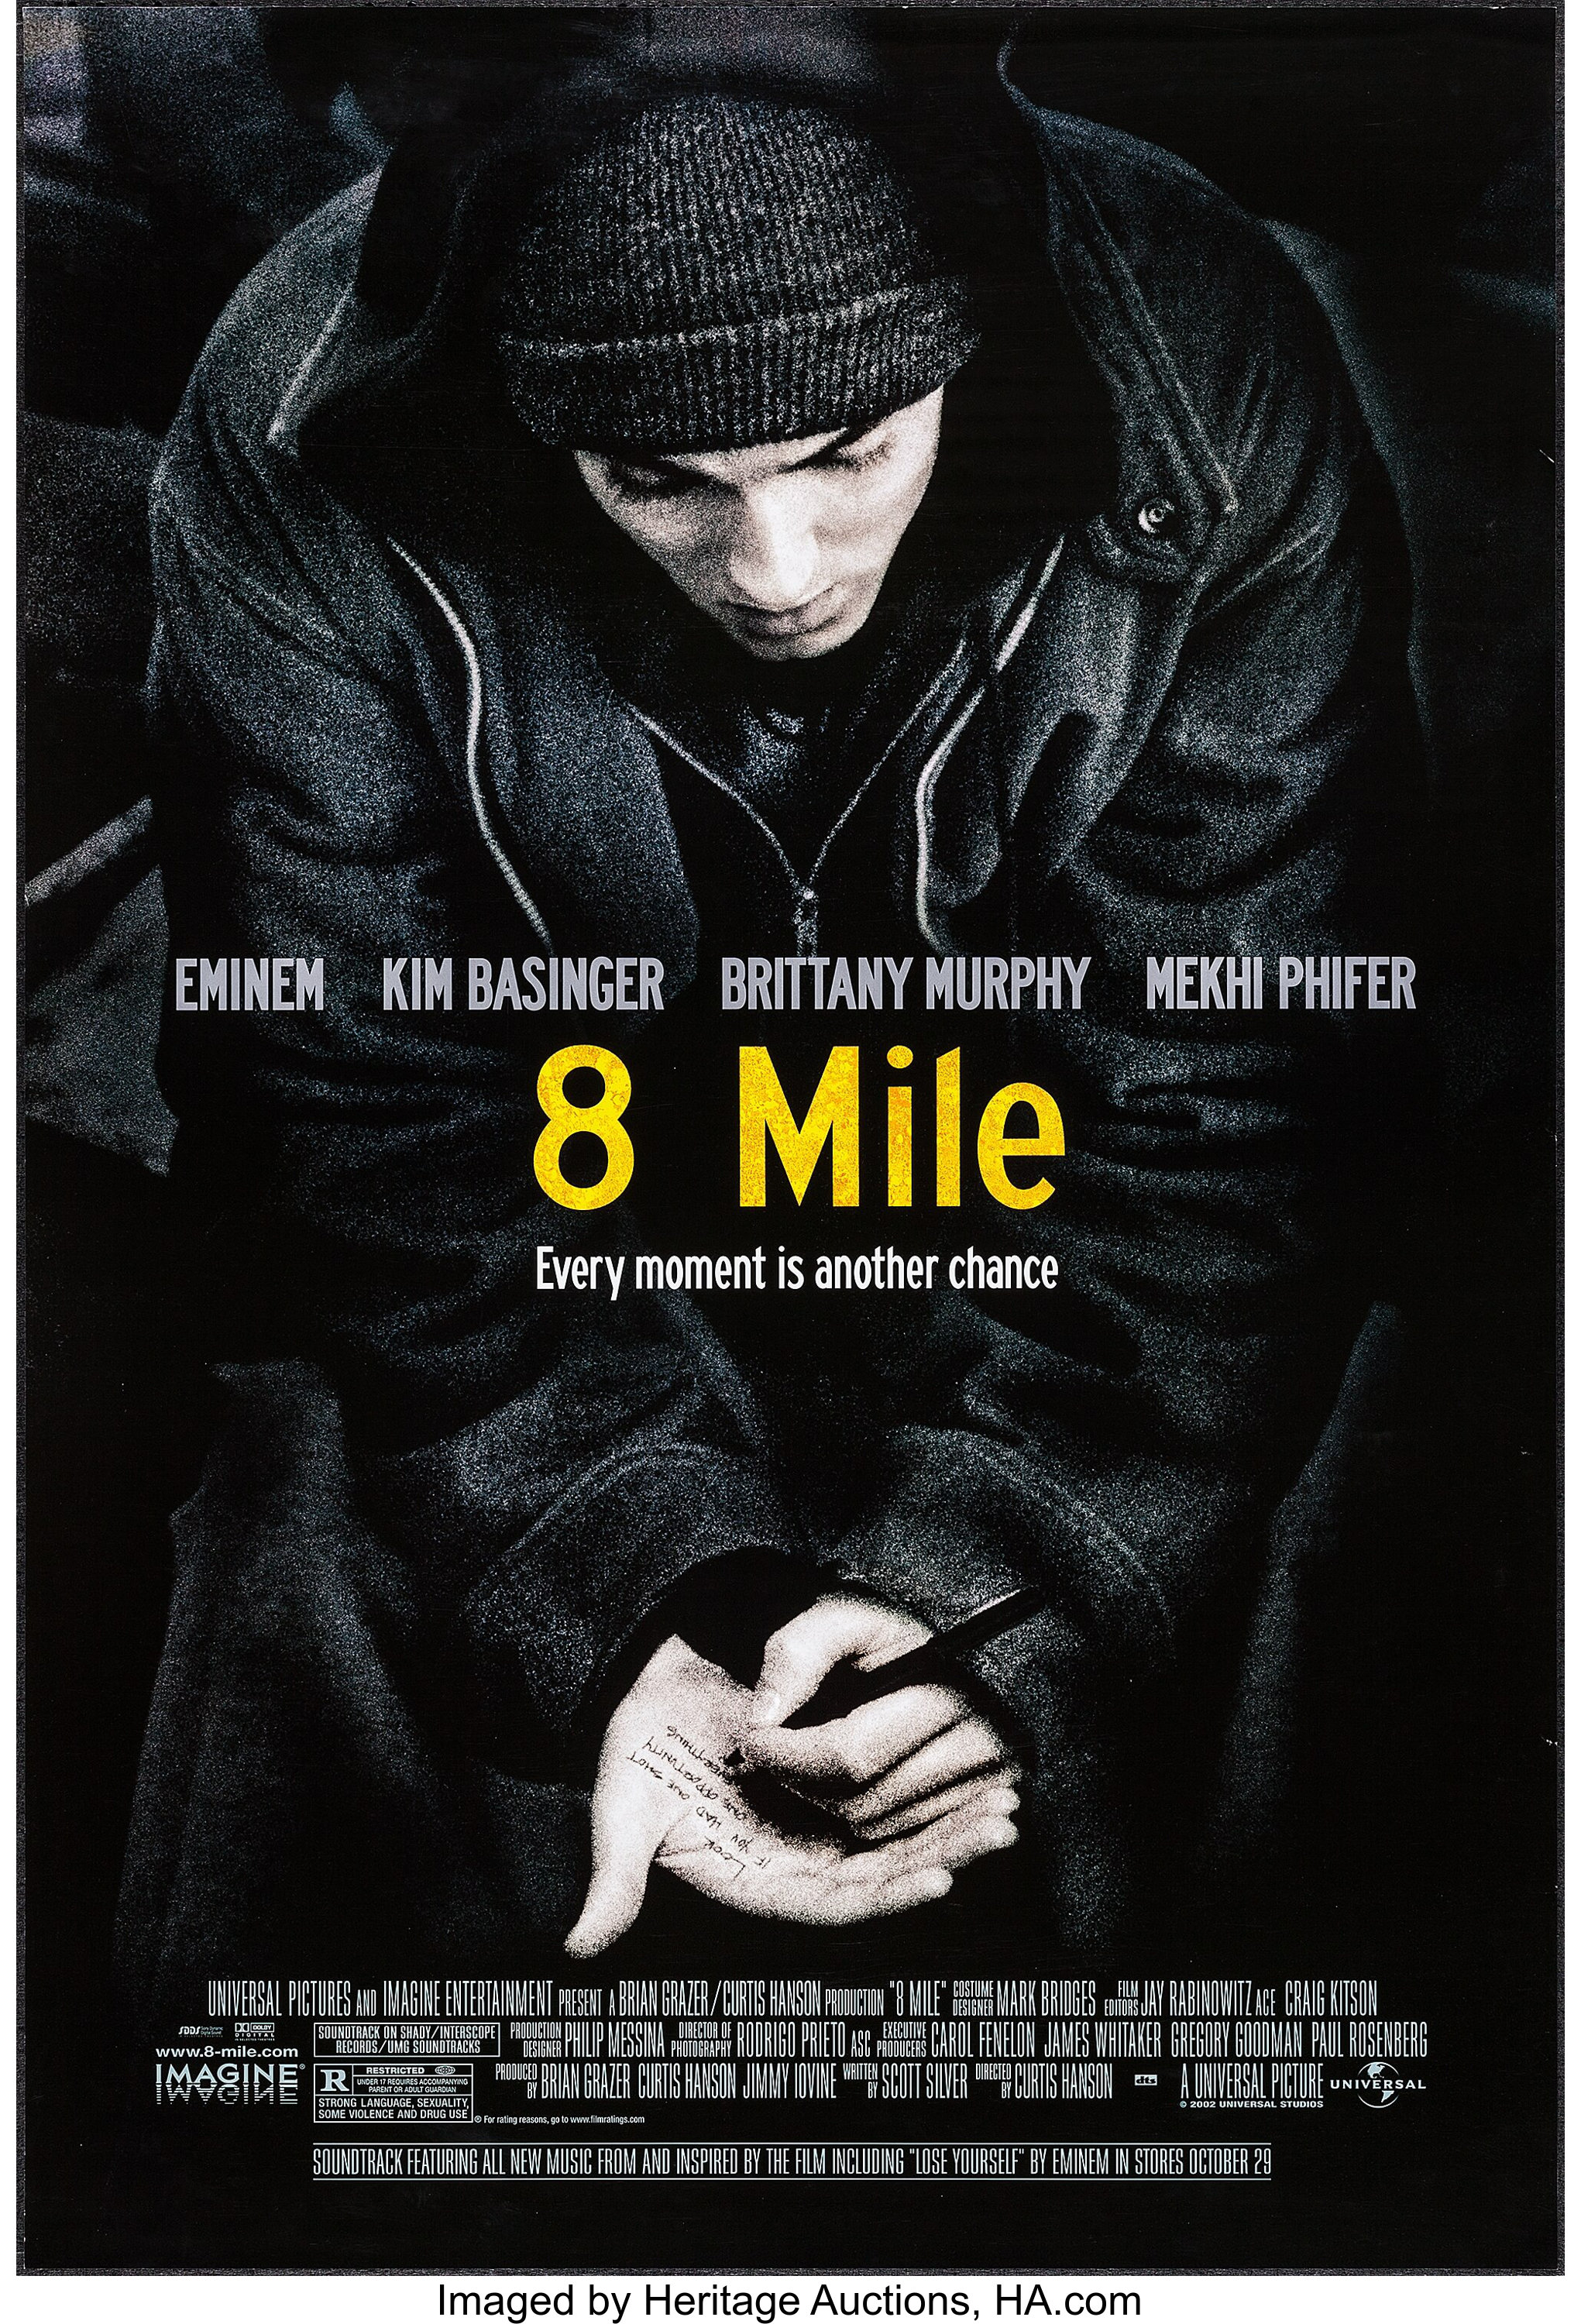 8 Mile Universal 2002 One Sheet 27 X 40 Ds Drama Lot 54007 Heritage Auctions